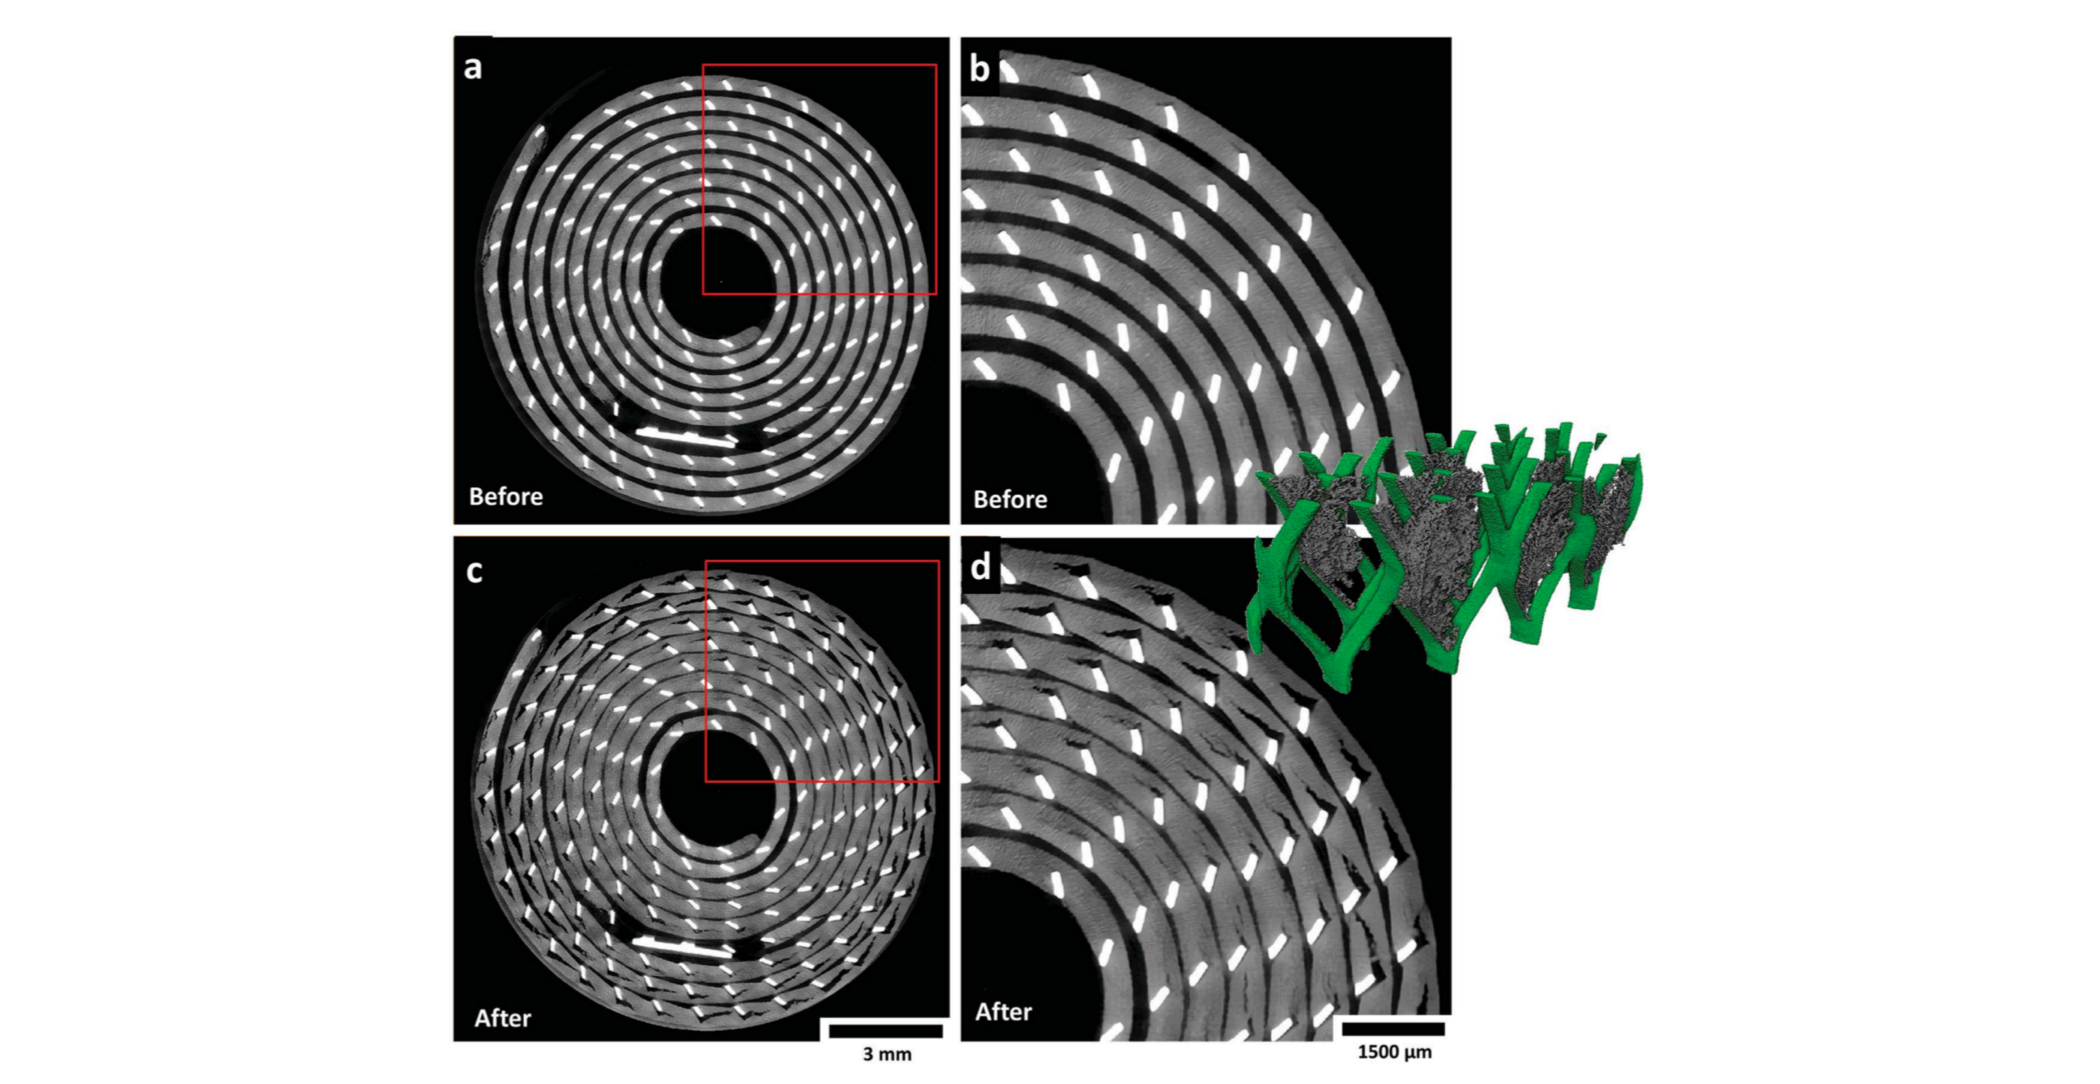 Real-Time 3D Imaging Shows How Disposable Lithium Batteries Degrade